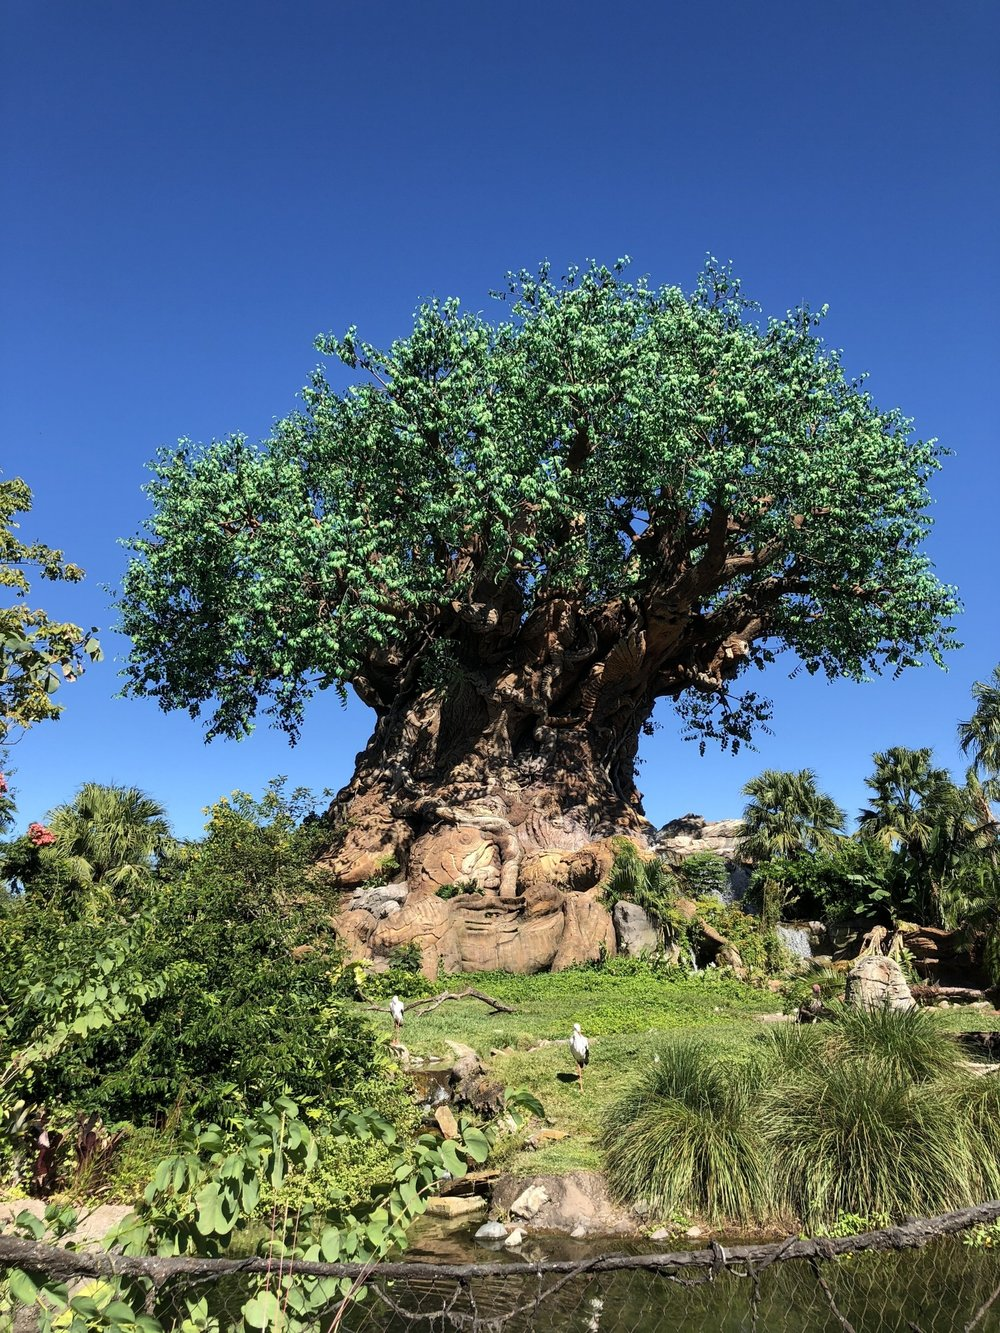 DOAD Animal Kingdom- Tree of Life